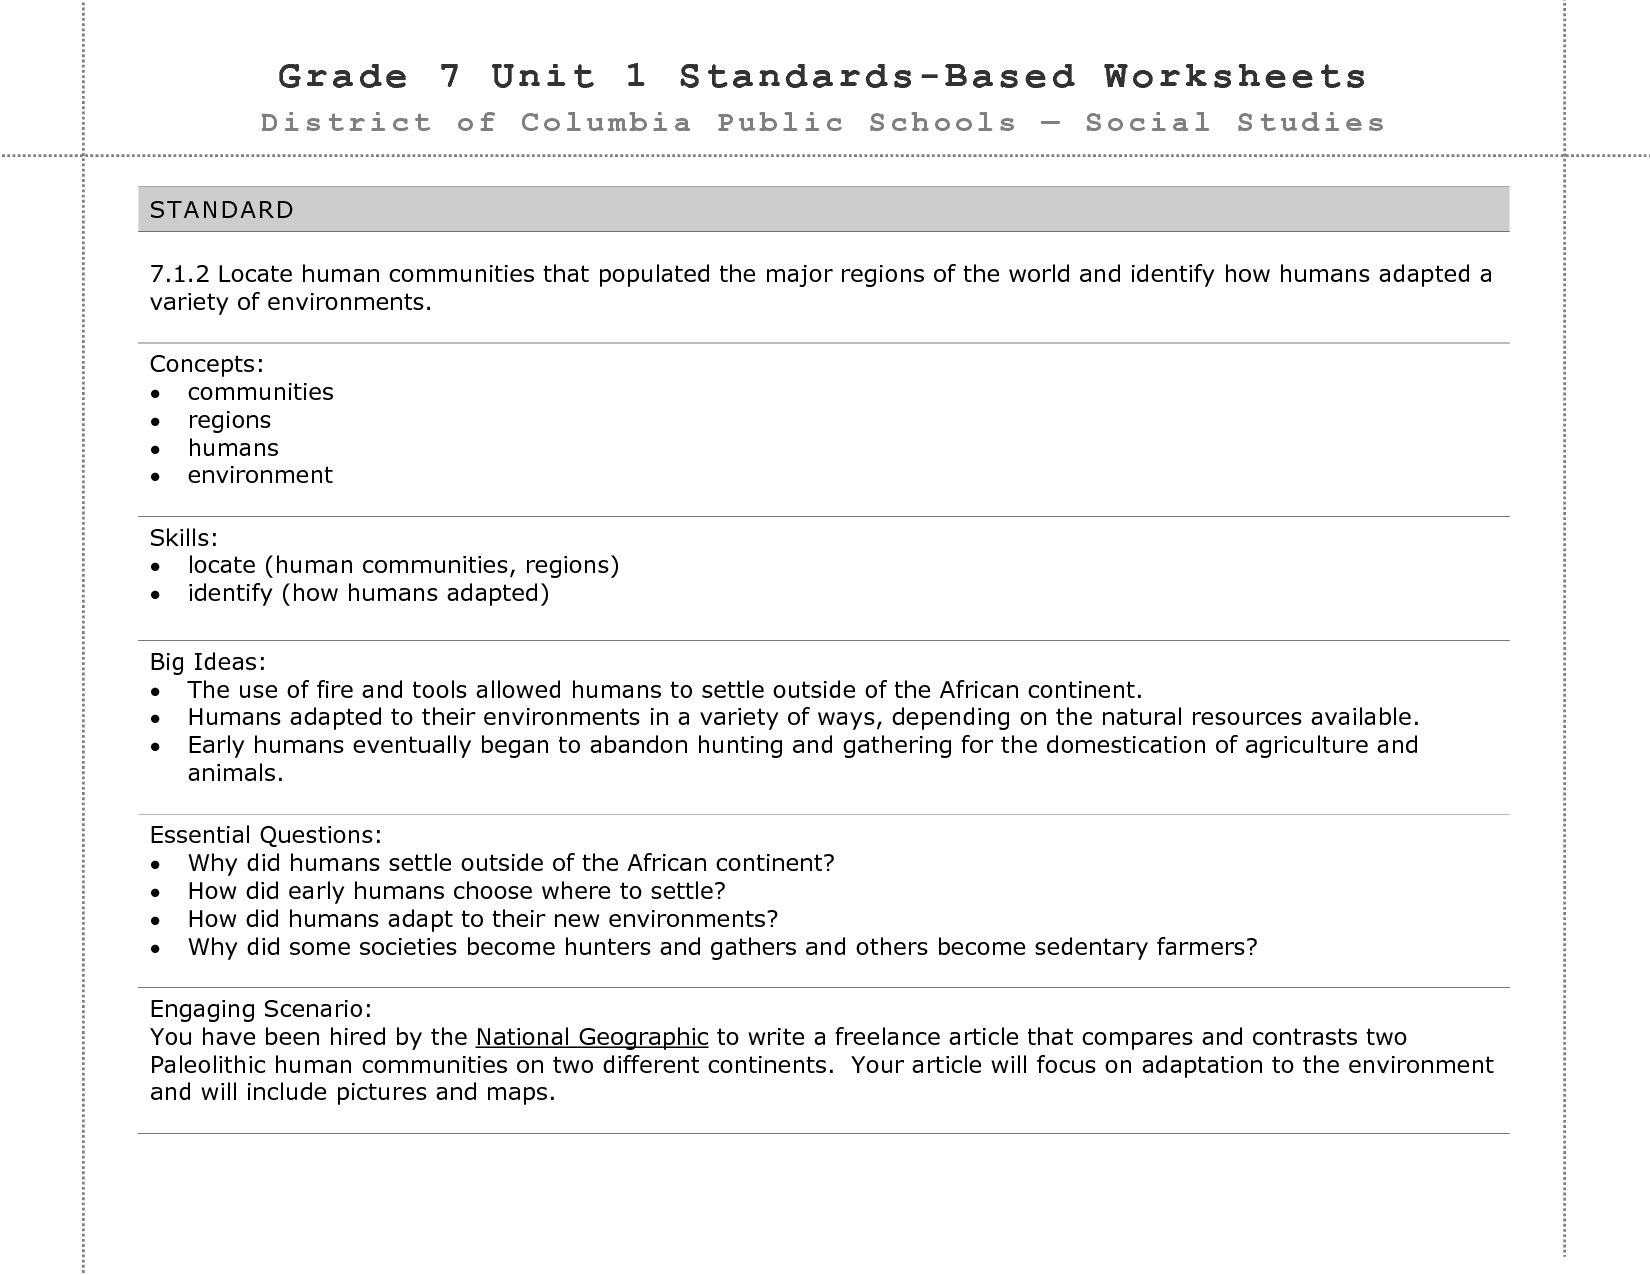 18 Best Images Of 7 Grade Social Stu S Worksheets